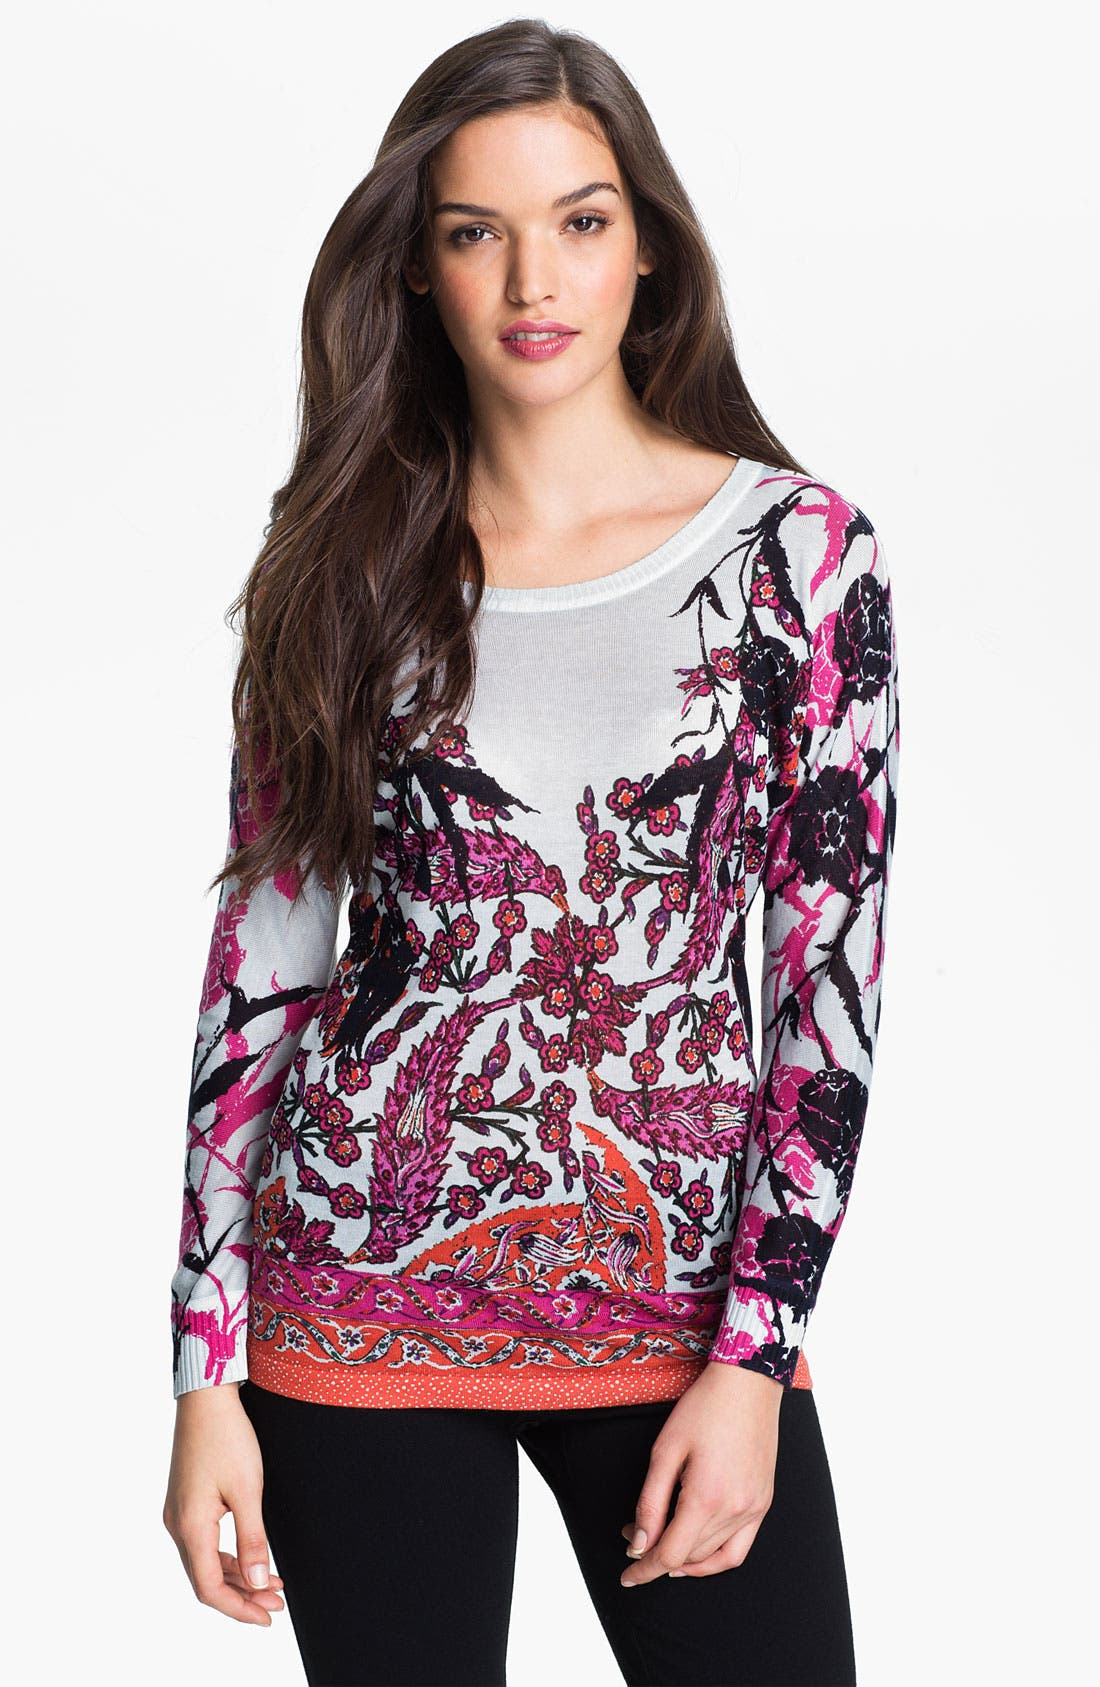 Alternate Image 1 Selected - Nic + Zoe 'Paradise' Print Top